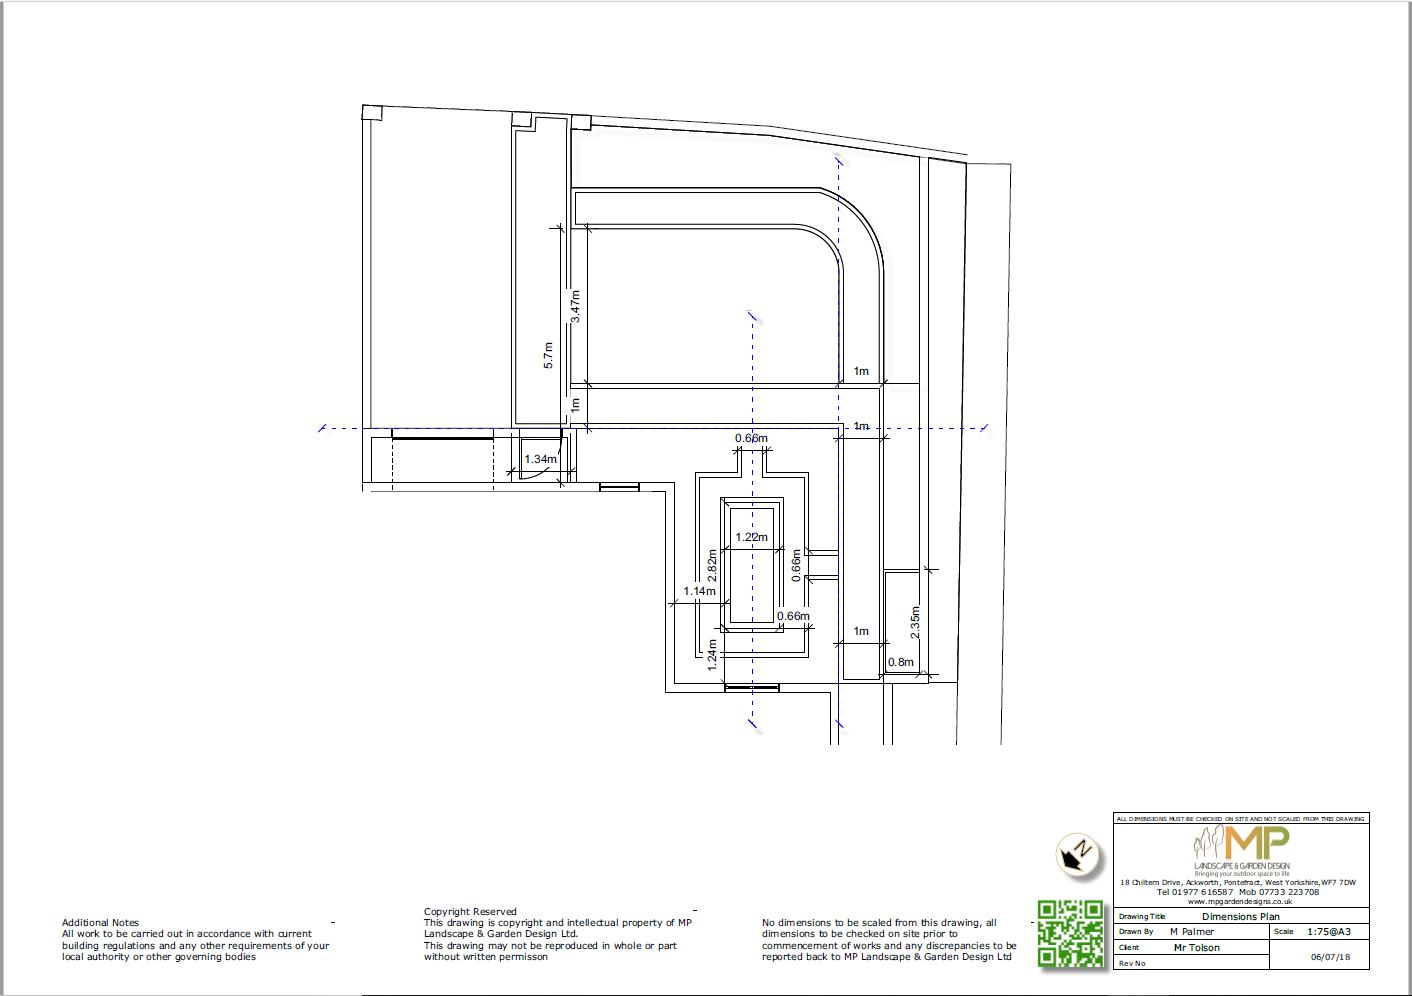 Garden layout dimensions plans for a front garden in Kippax, Leeds